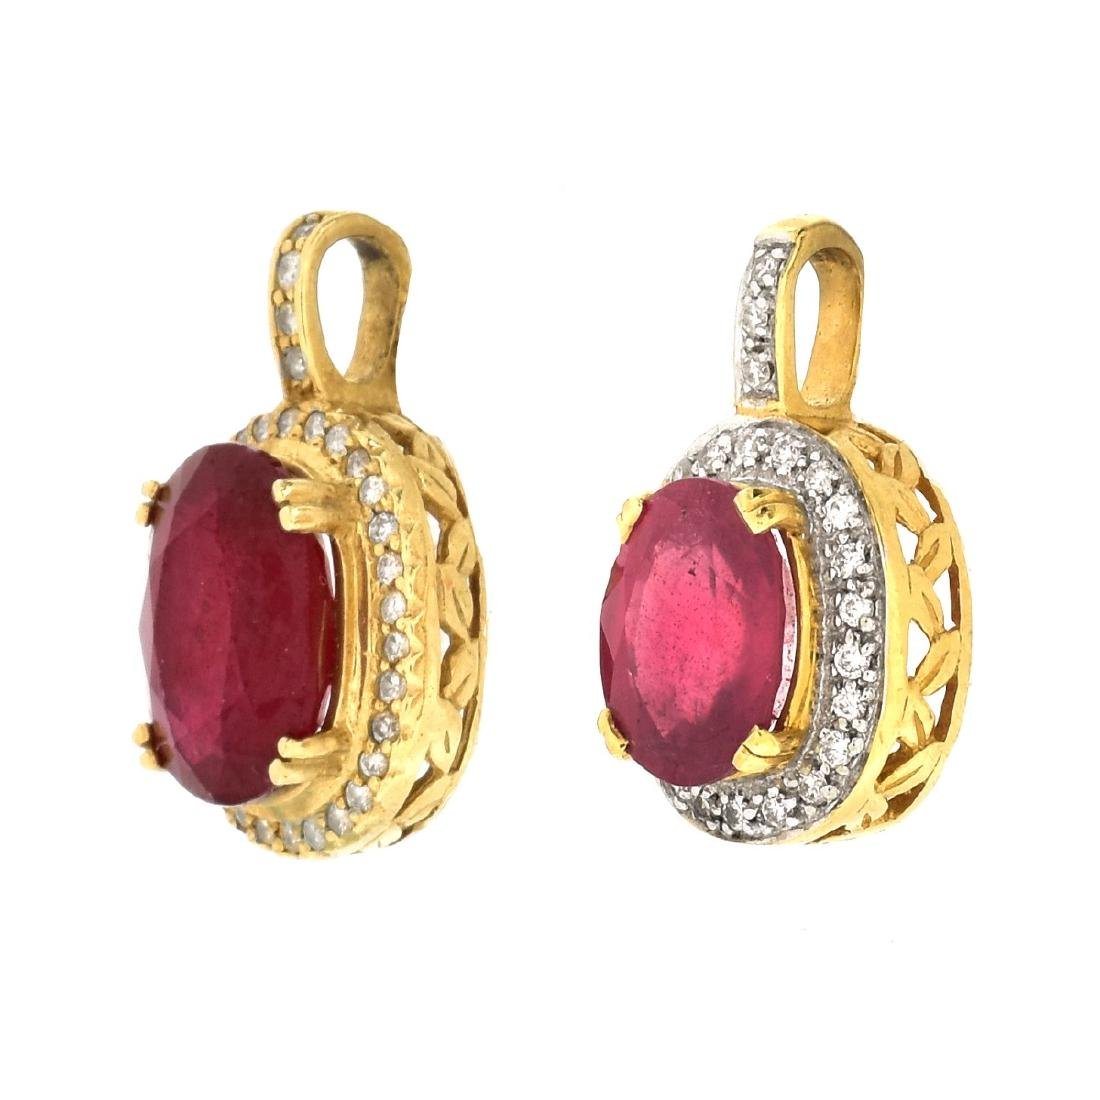 Two Gemstone and Gold Pendants - 2